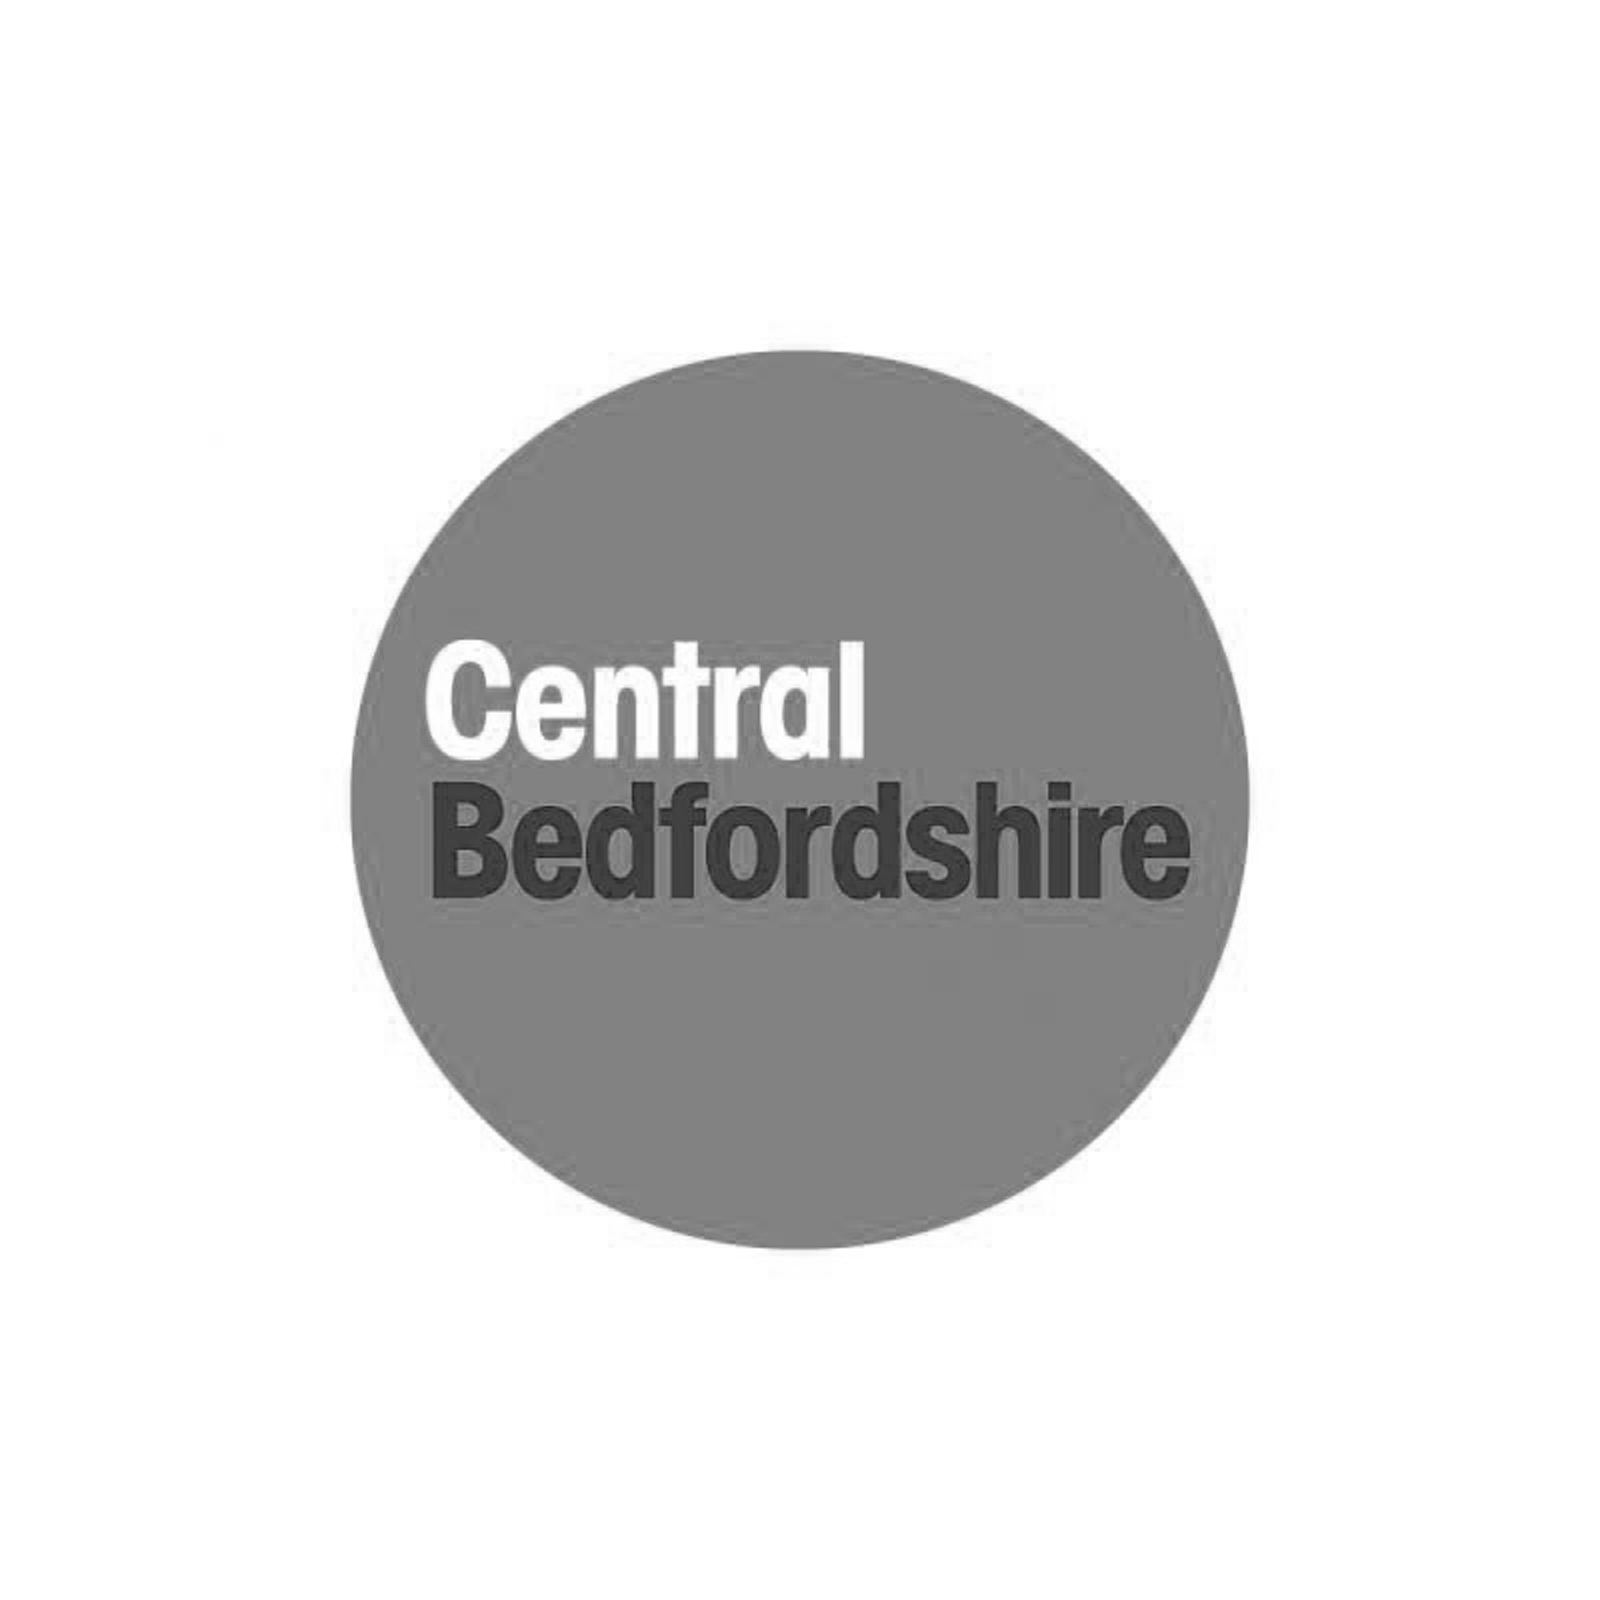 Central Bedfordshire Council BW.jpg